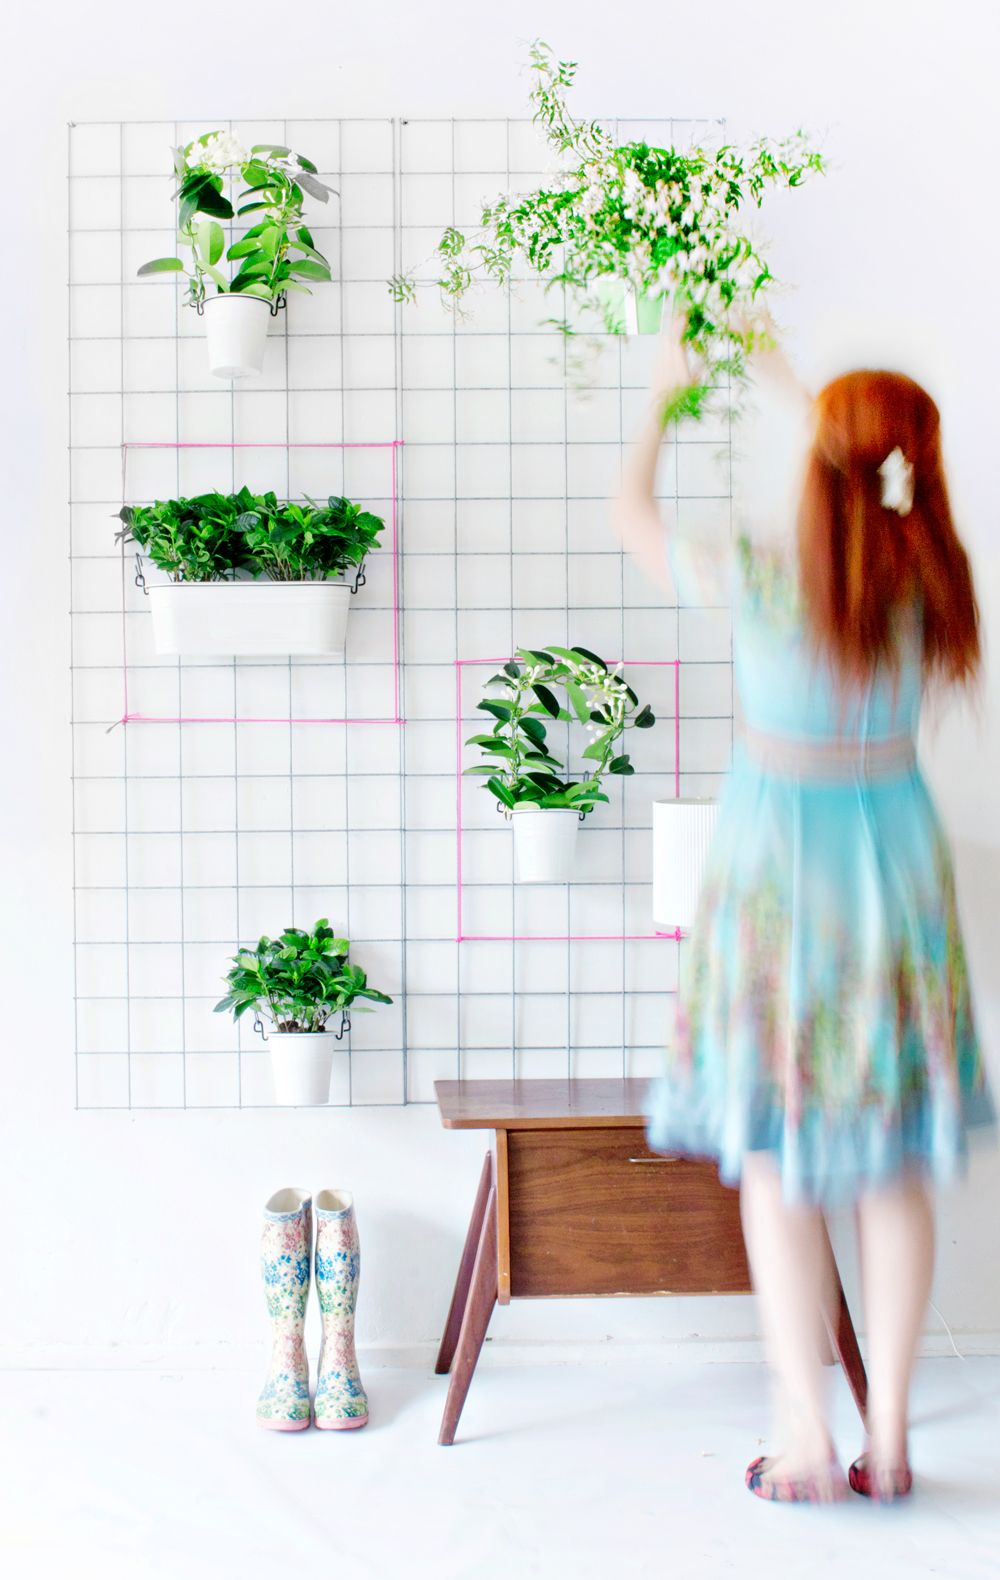 1567594061 863 15 stylish ways to make a hanging wall vase or planter - 15 Stylish Ways To Make A Hanging Wall Vase Or Planter